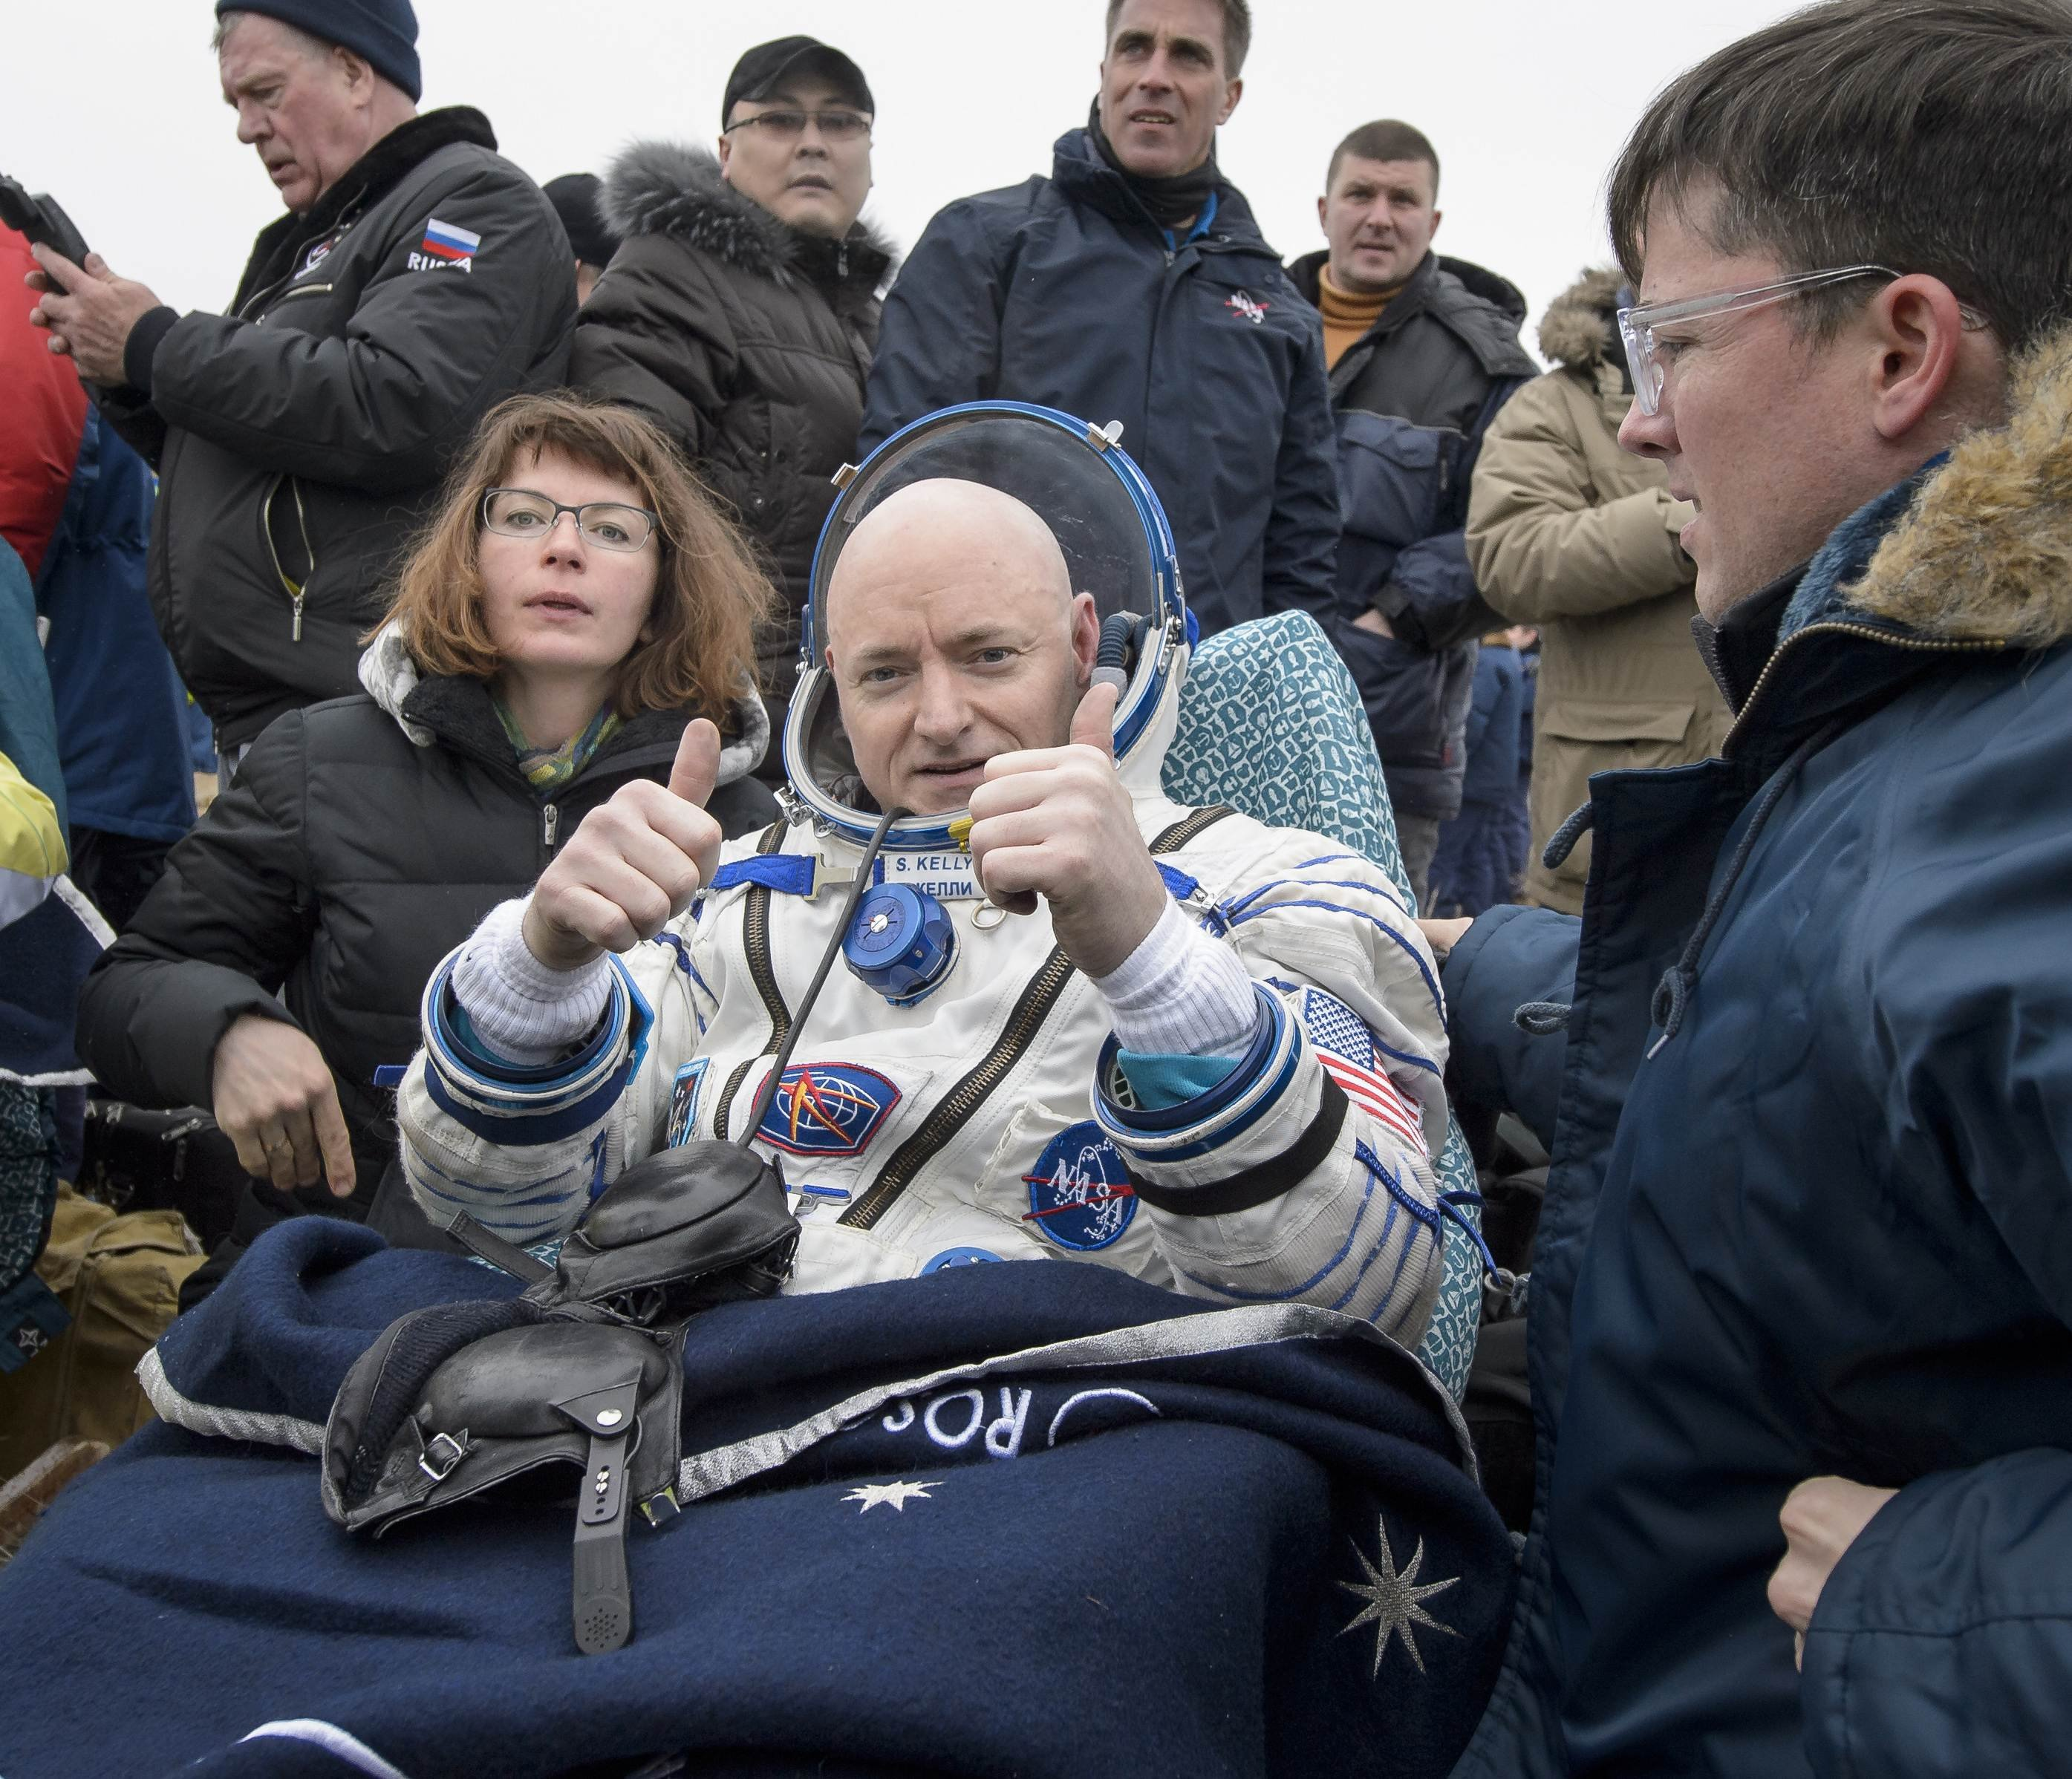 Expedition 46 Commander Scott Kelly of NASA rest in a chair outside of the Soyuz TMA-18M spacecraft just minutes after he and Russian cosmonauts Mikhail Kornienko and Sergey Volkov of Roscosmos landed in a remote area near the town of Zhezkazgan, Kazakhstan on March 2, 2016.